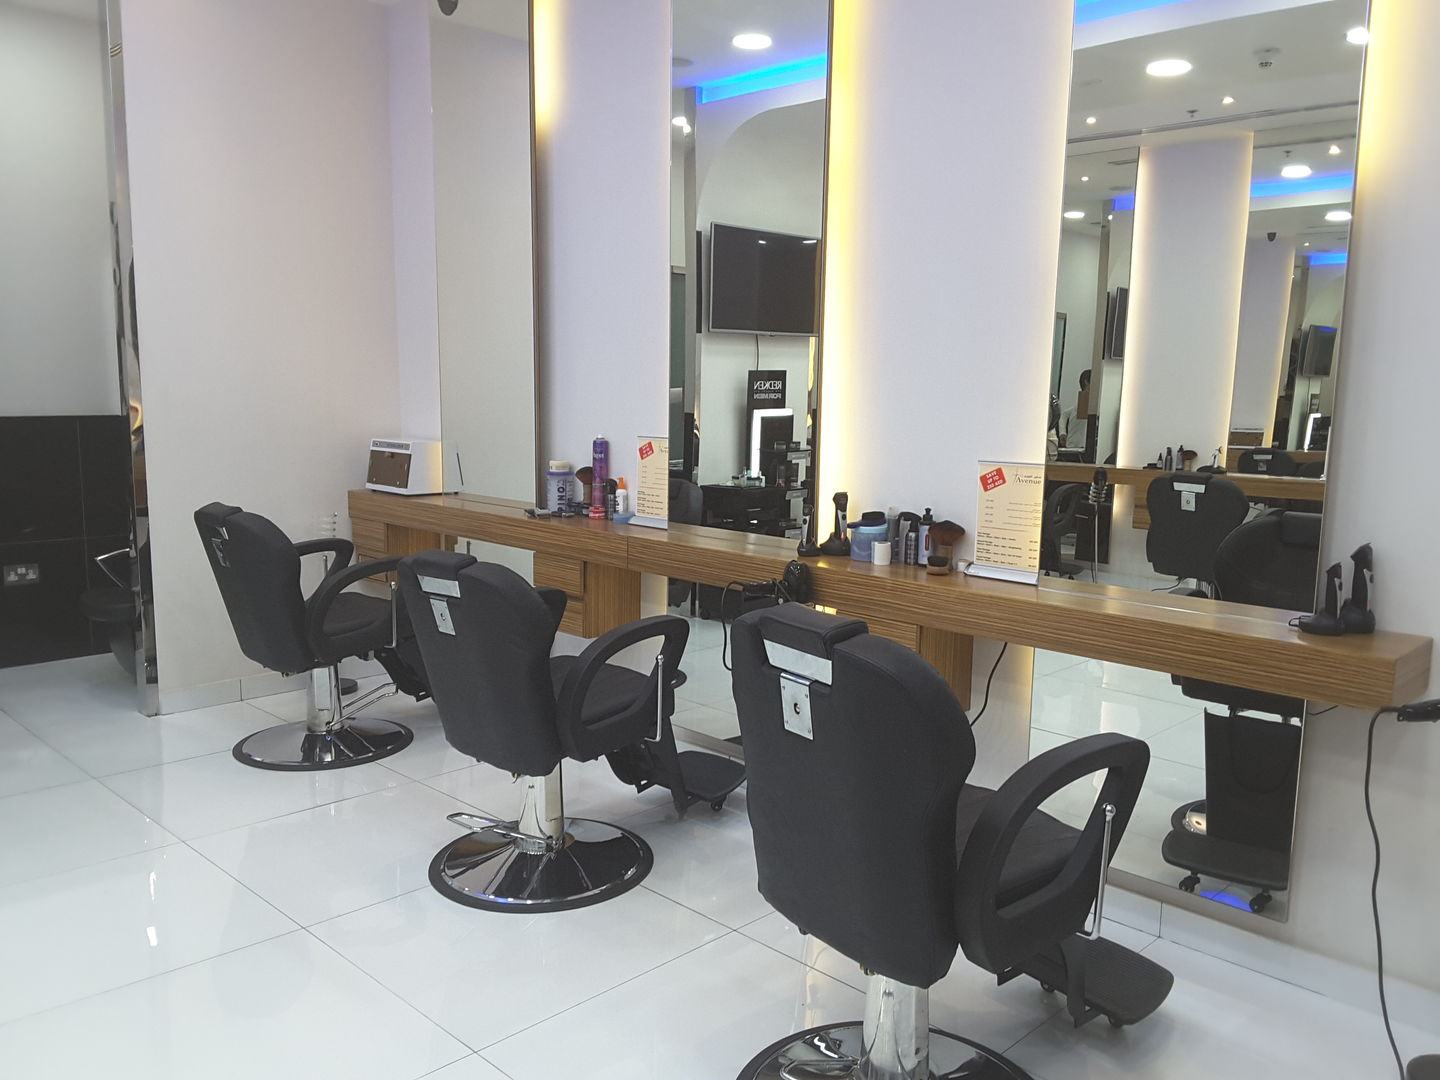 HiDubai-business-seven-avenue-gents-salon-beauty-wellness-health-beauty-salons-tecom-al-thanyah-1-dubai-2